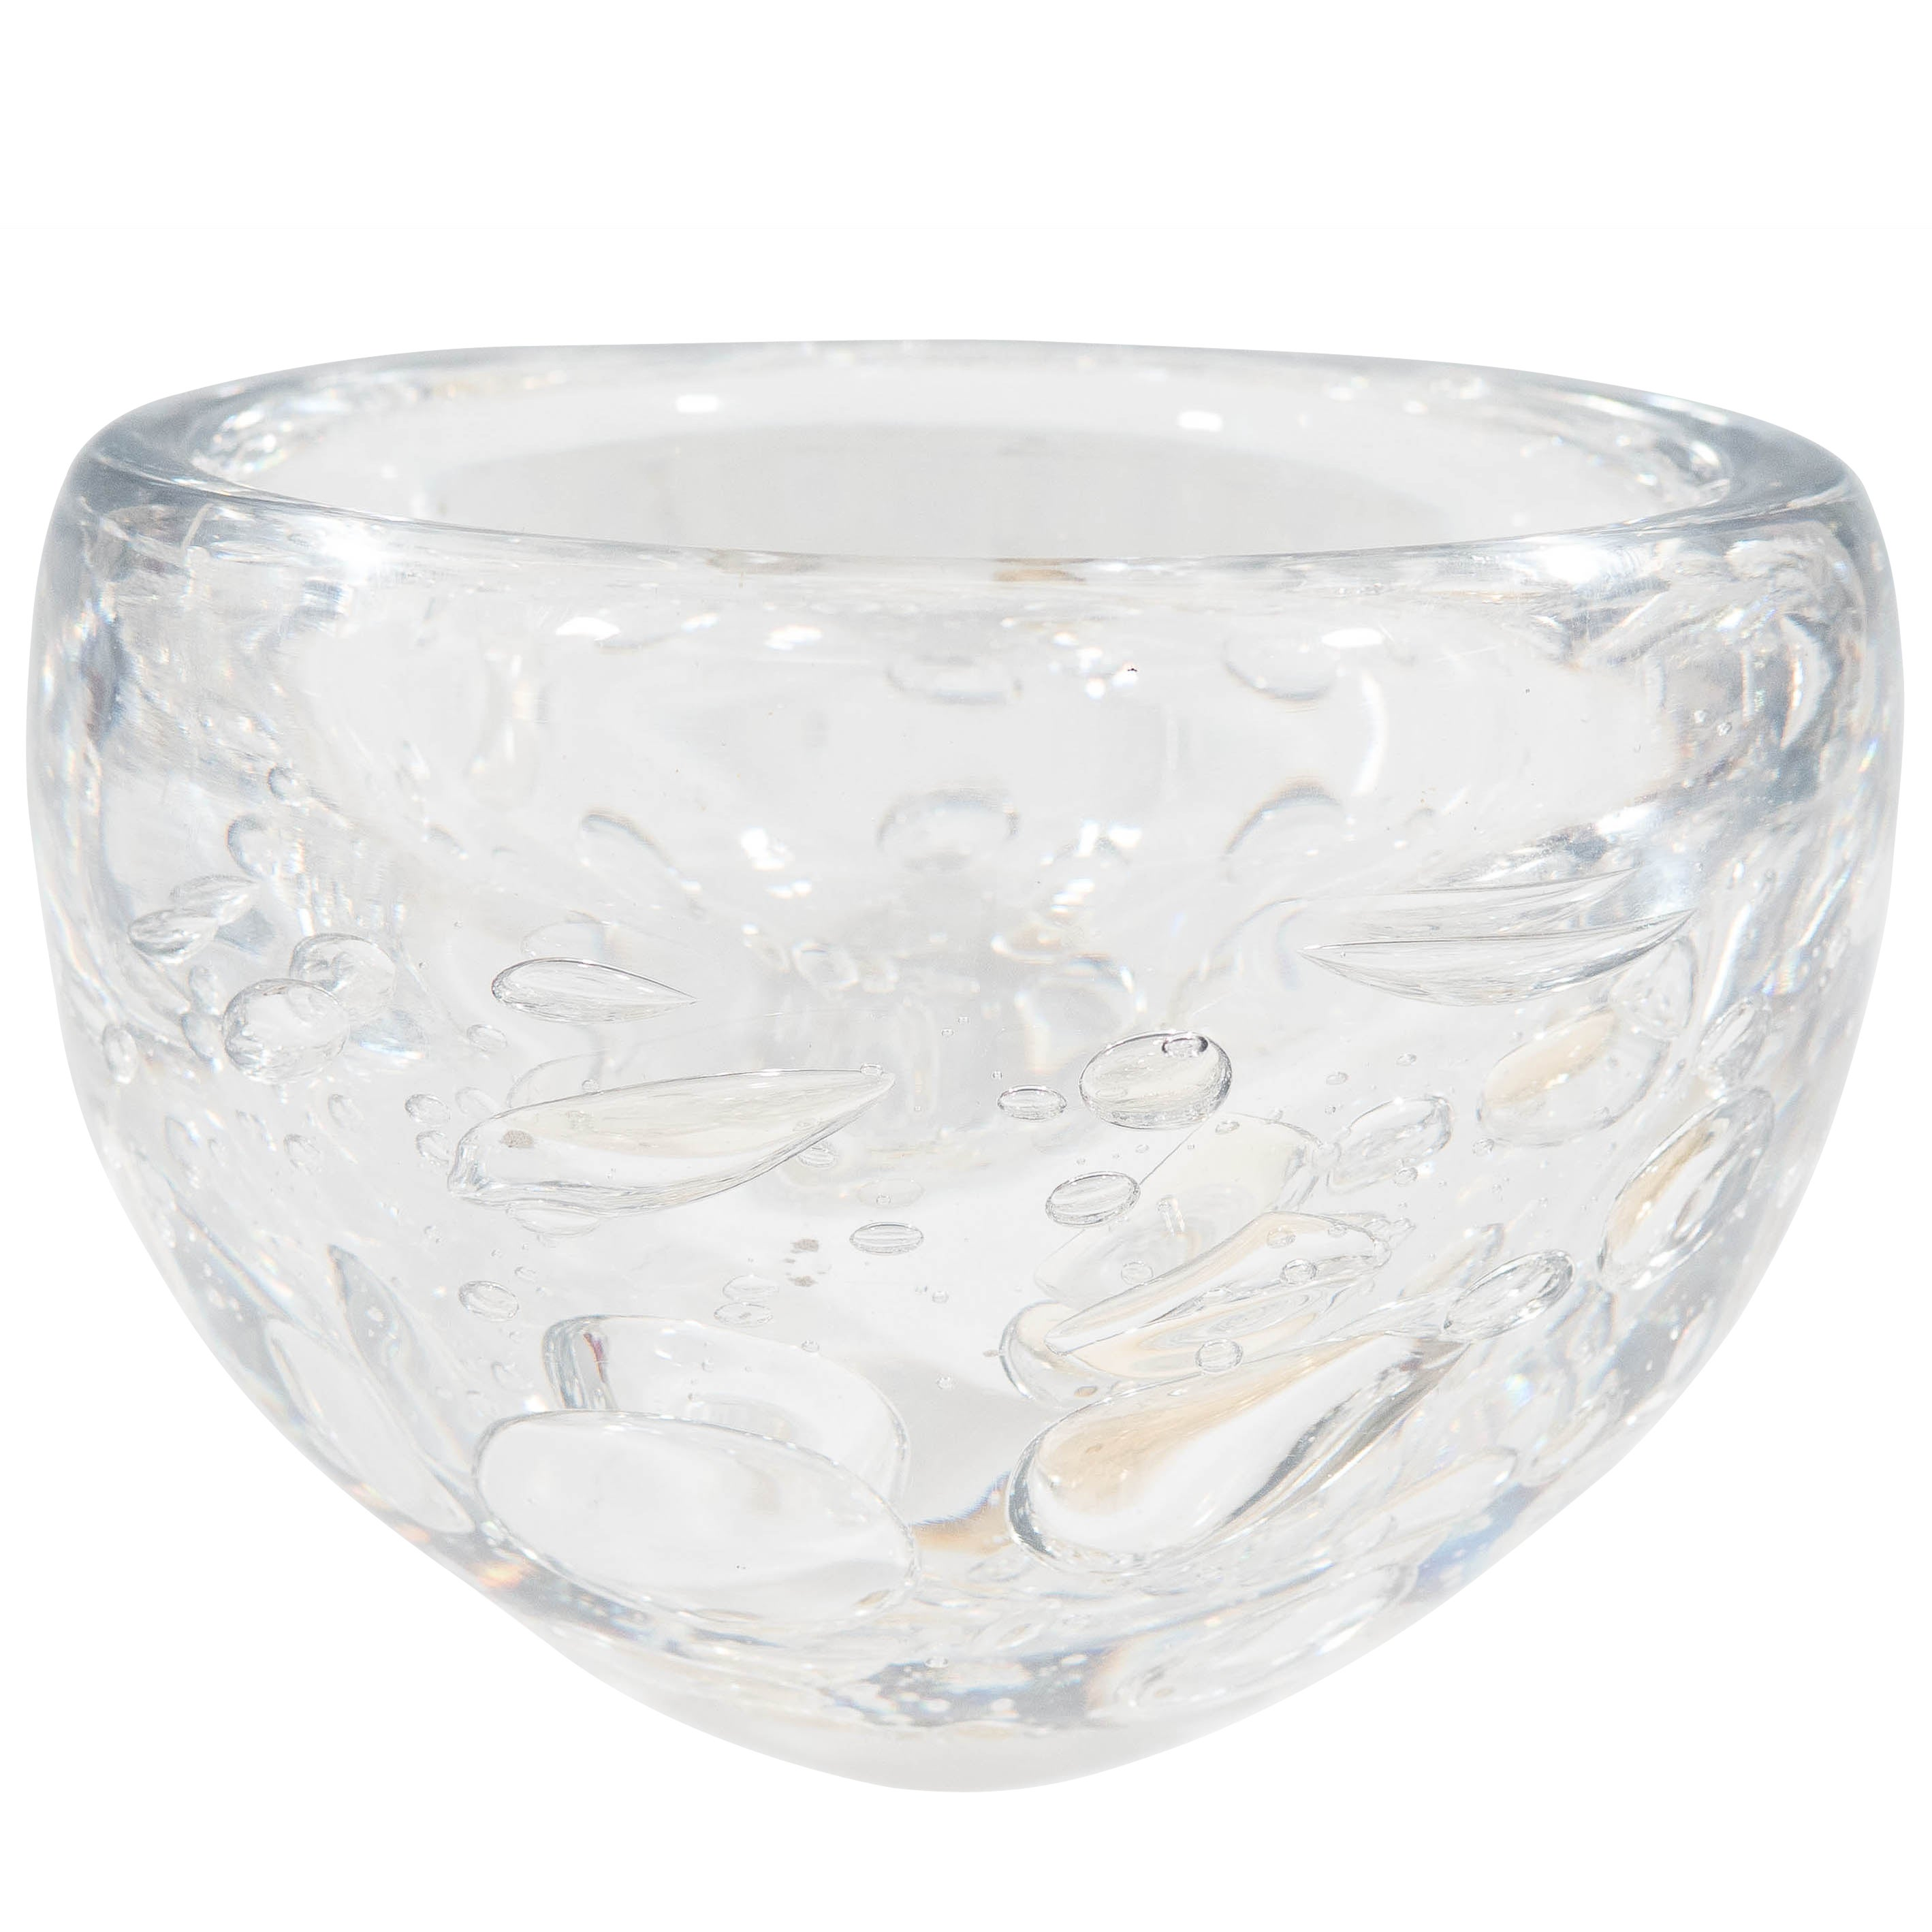 Decorative Glass Bowls Kosta Decorative Glass Bowl With Controlled Bubbles